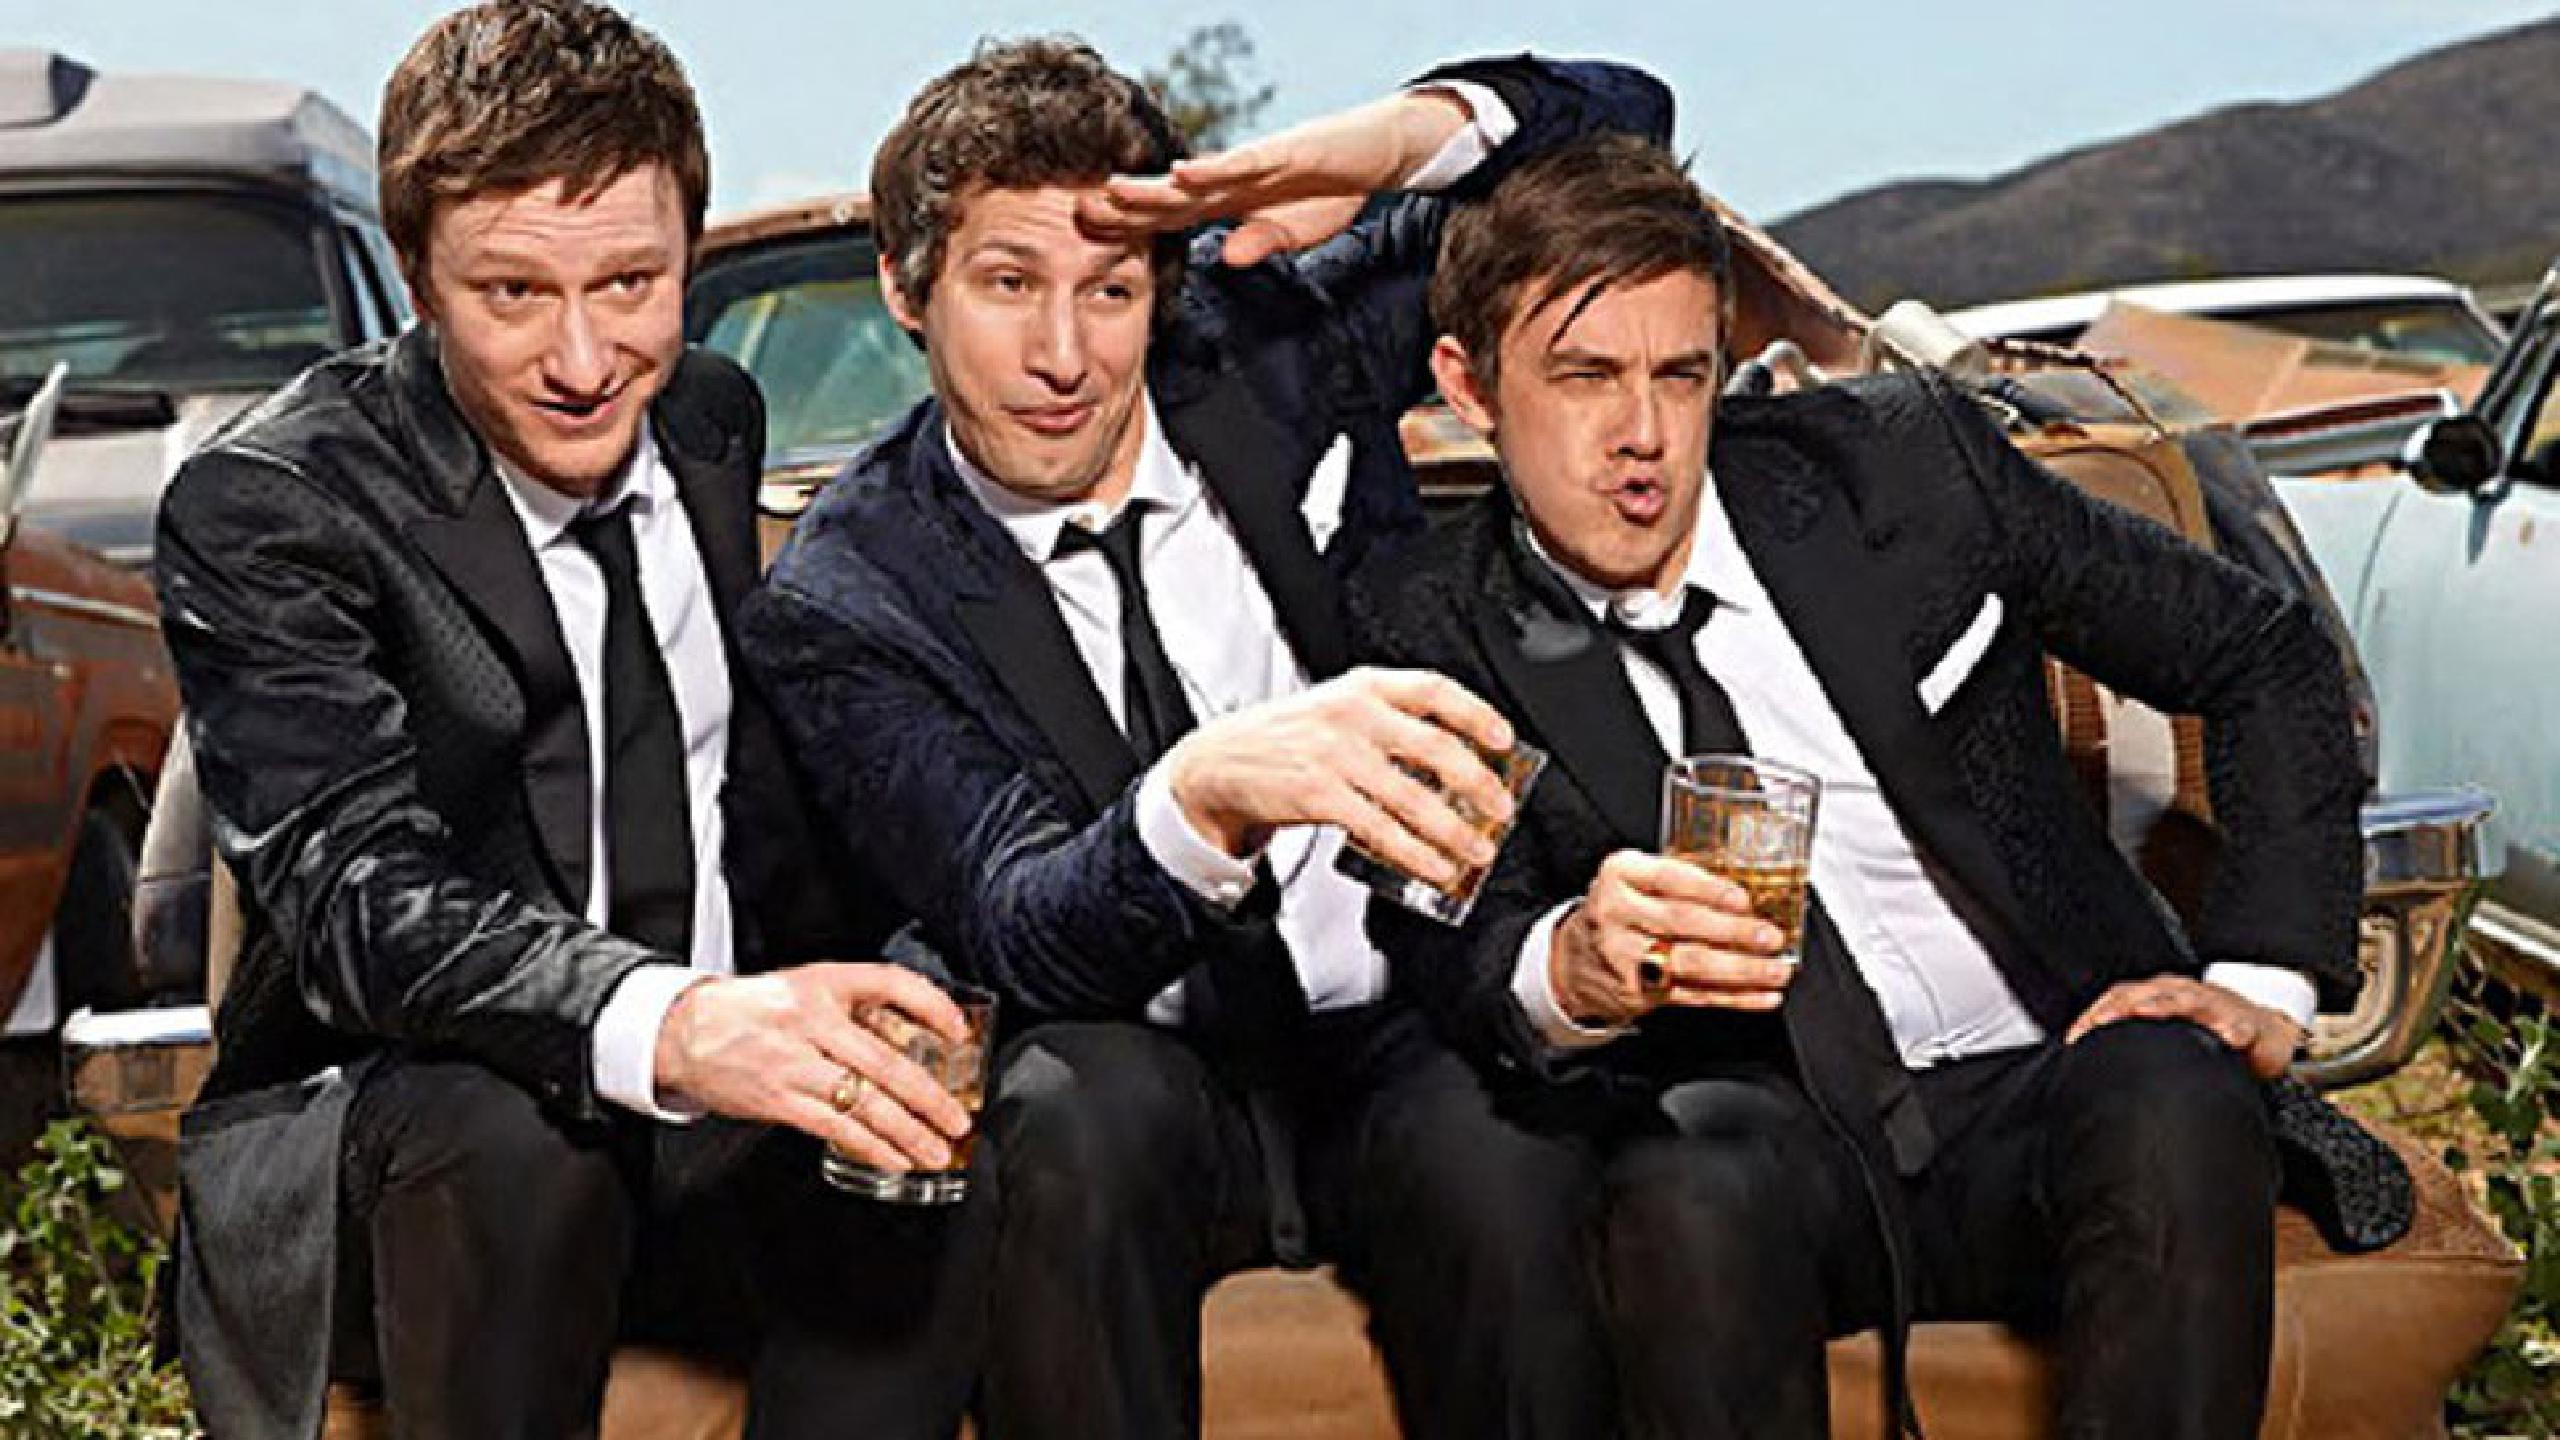 The Lonely Island Tour Dates 2019 2020. The Lonely Island